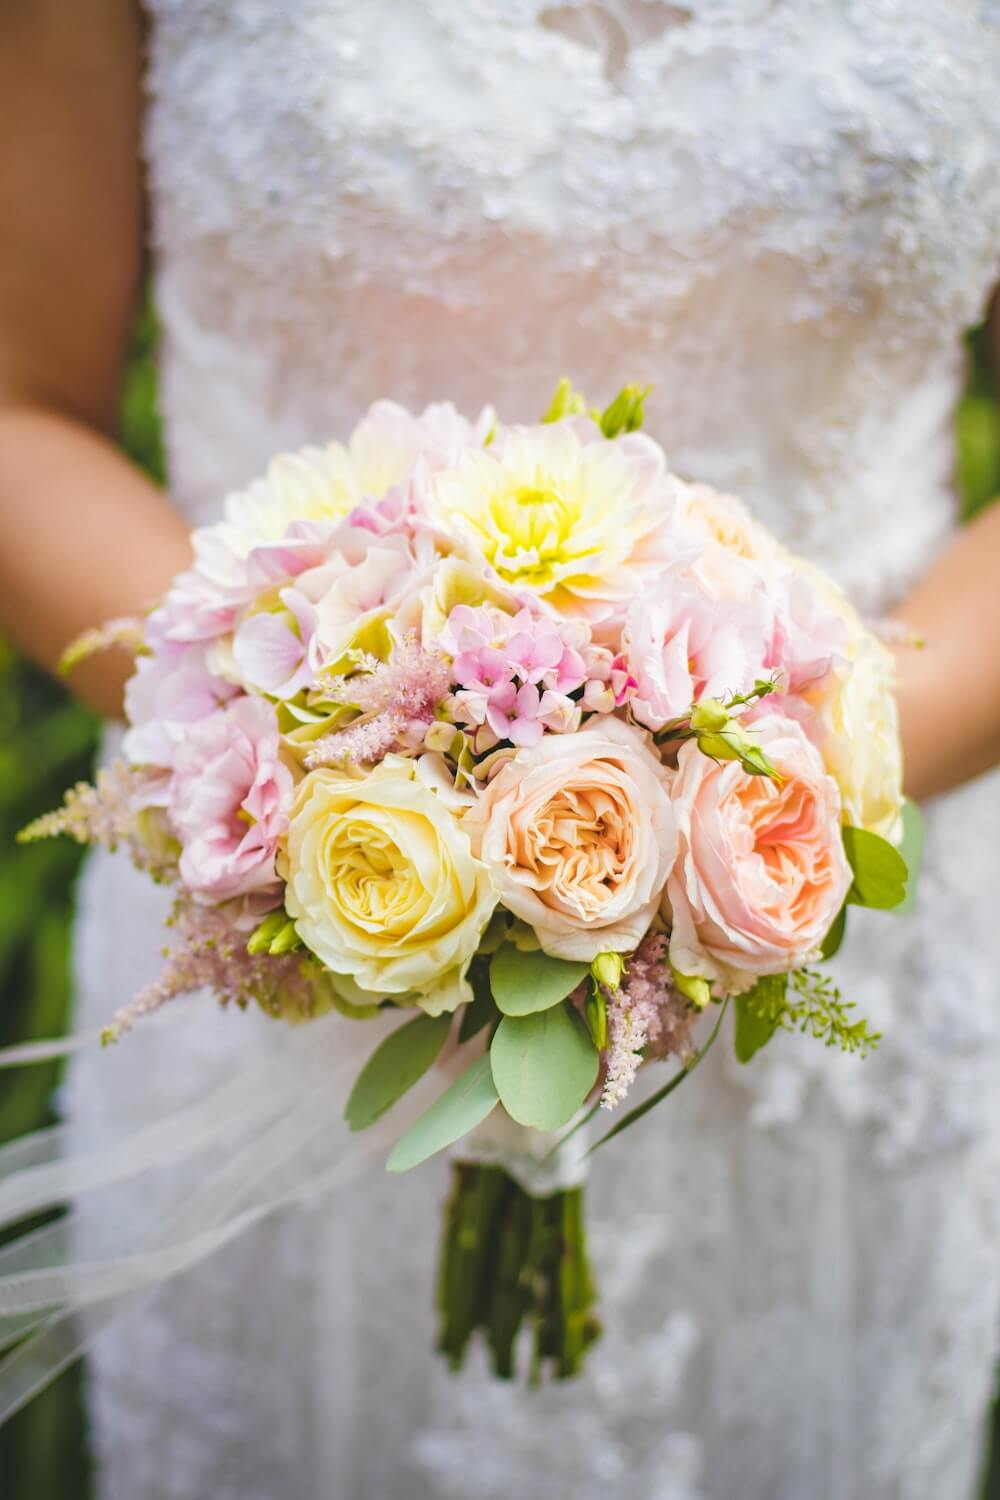 Pastel flowers in a round bouquet held by woman in wedding dress